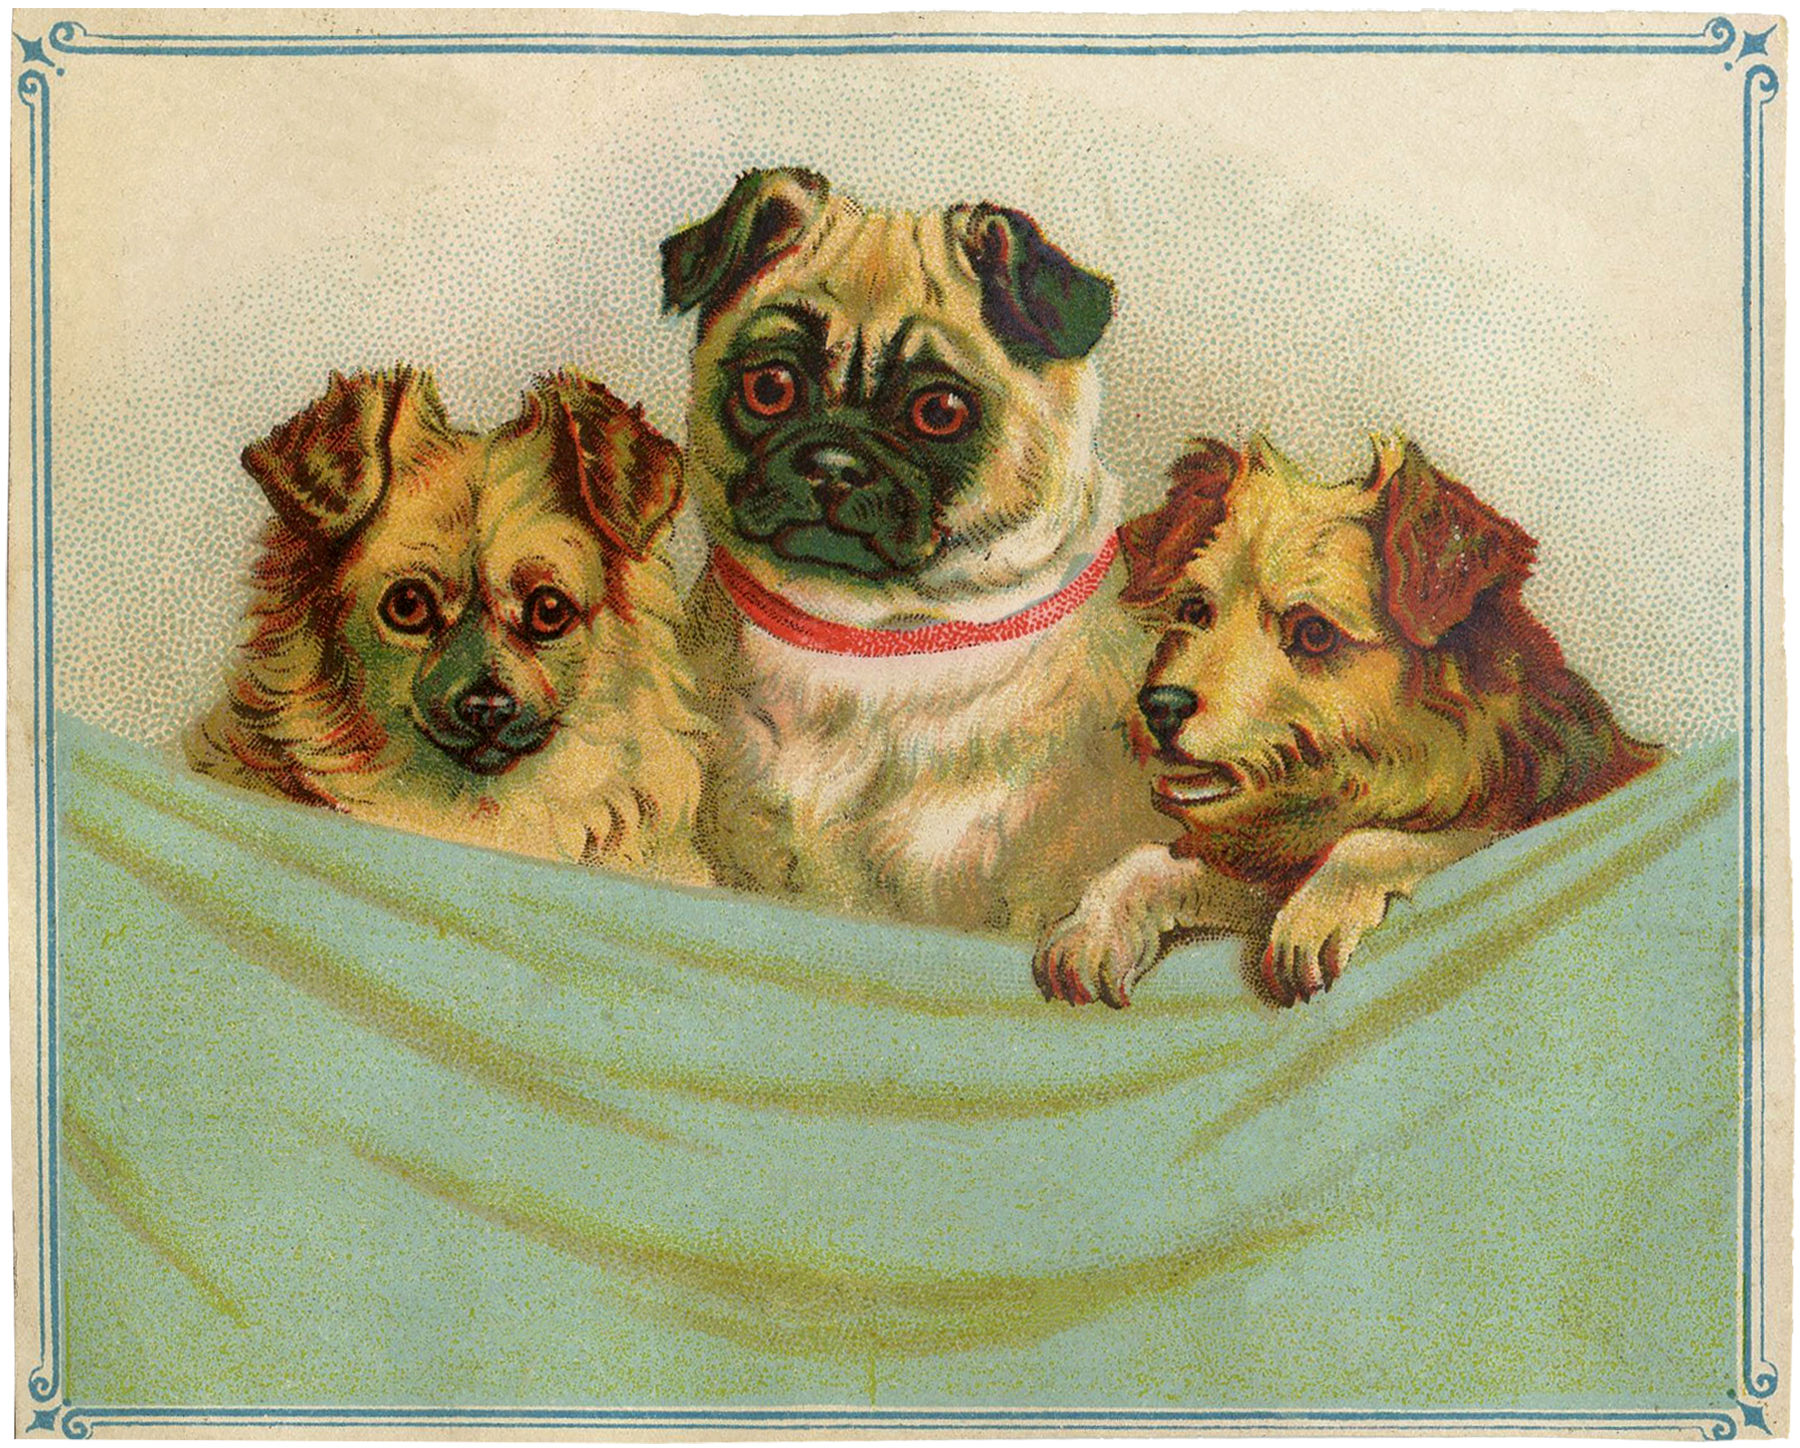 Pug clipart public domain. Dogs and cats archives